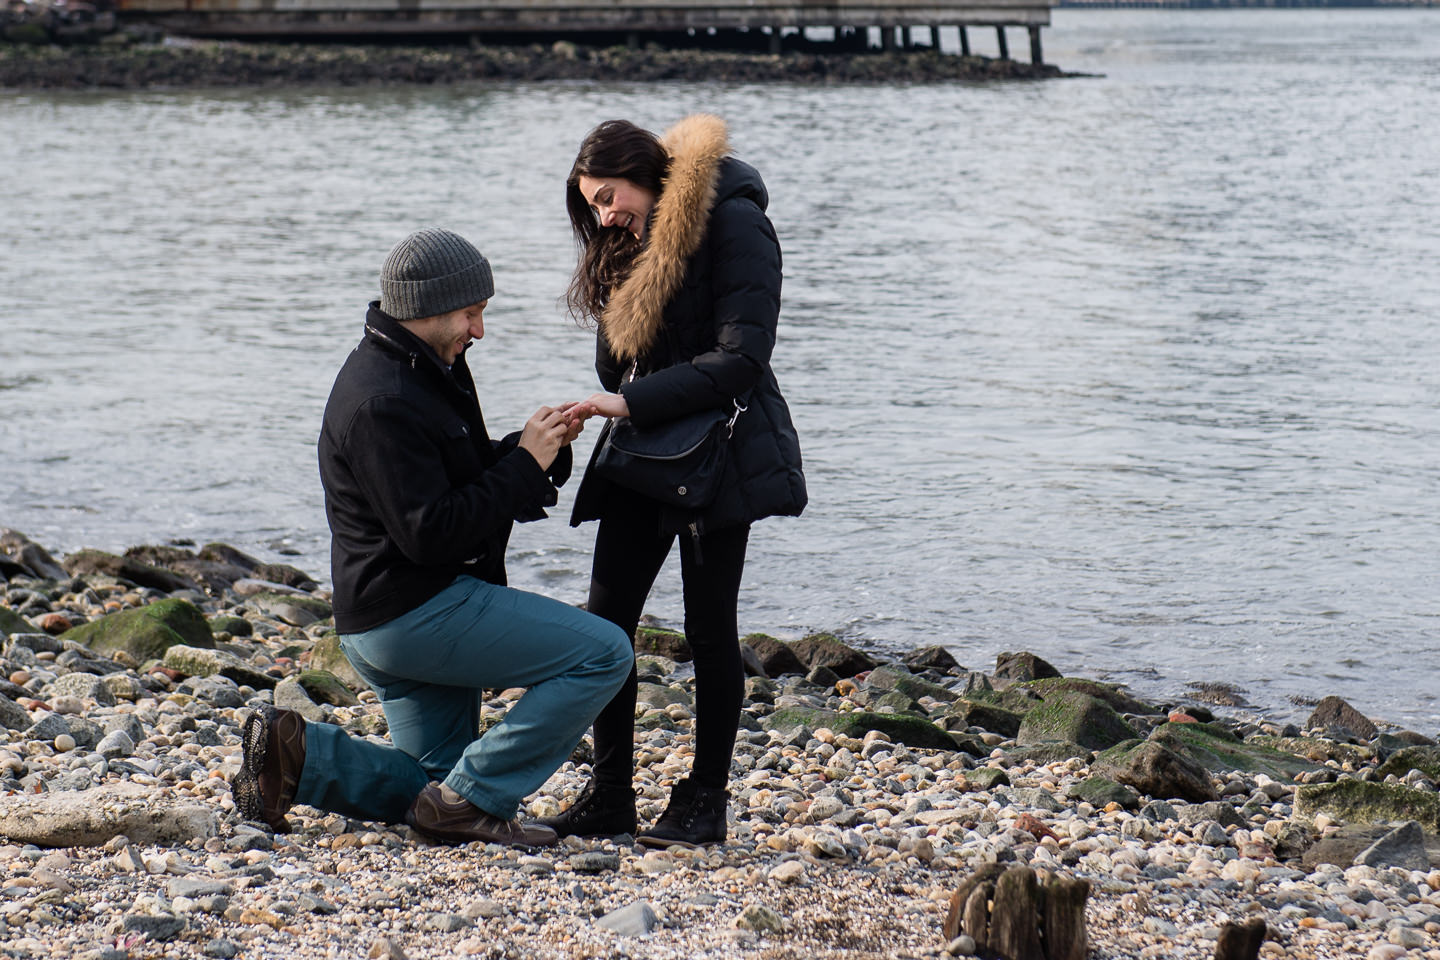 Dumbo, Brooklyn proposal by the water on pebble beach in NYC